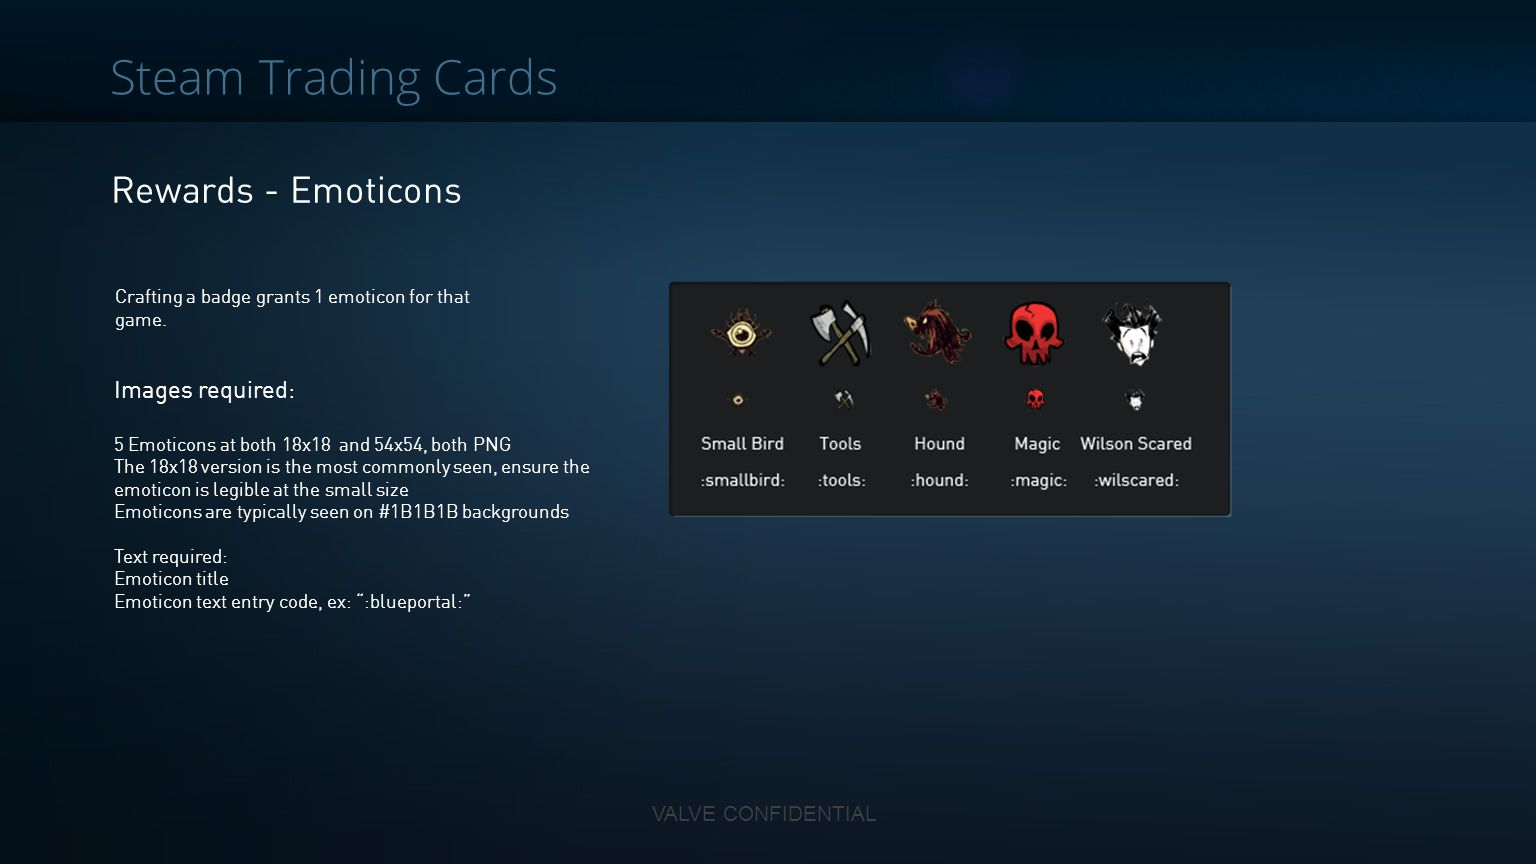 Steam Trading Cards Rewards - Emoticons Images required: